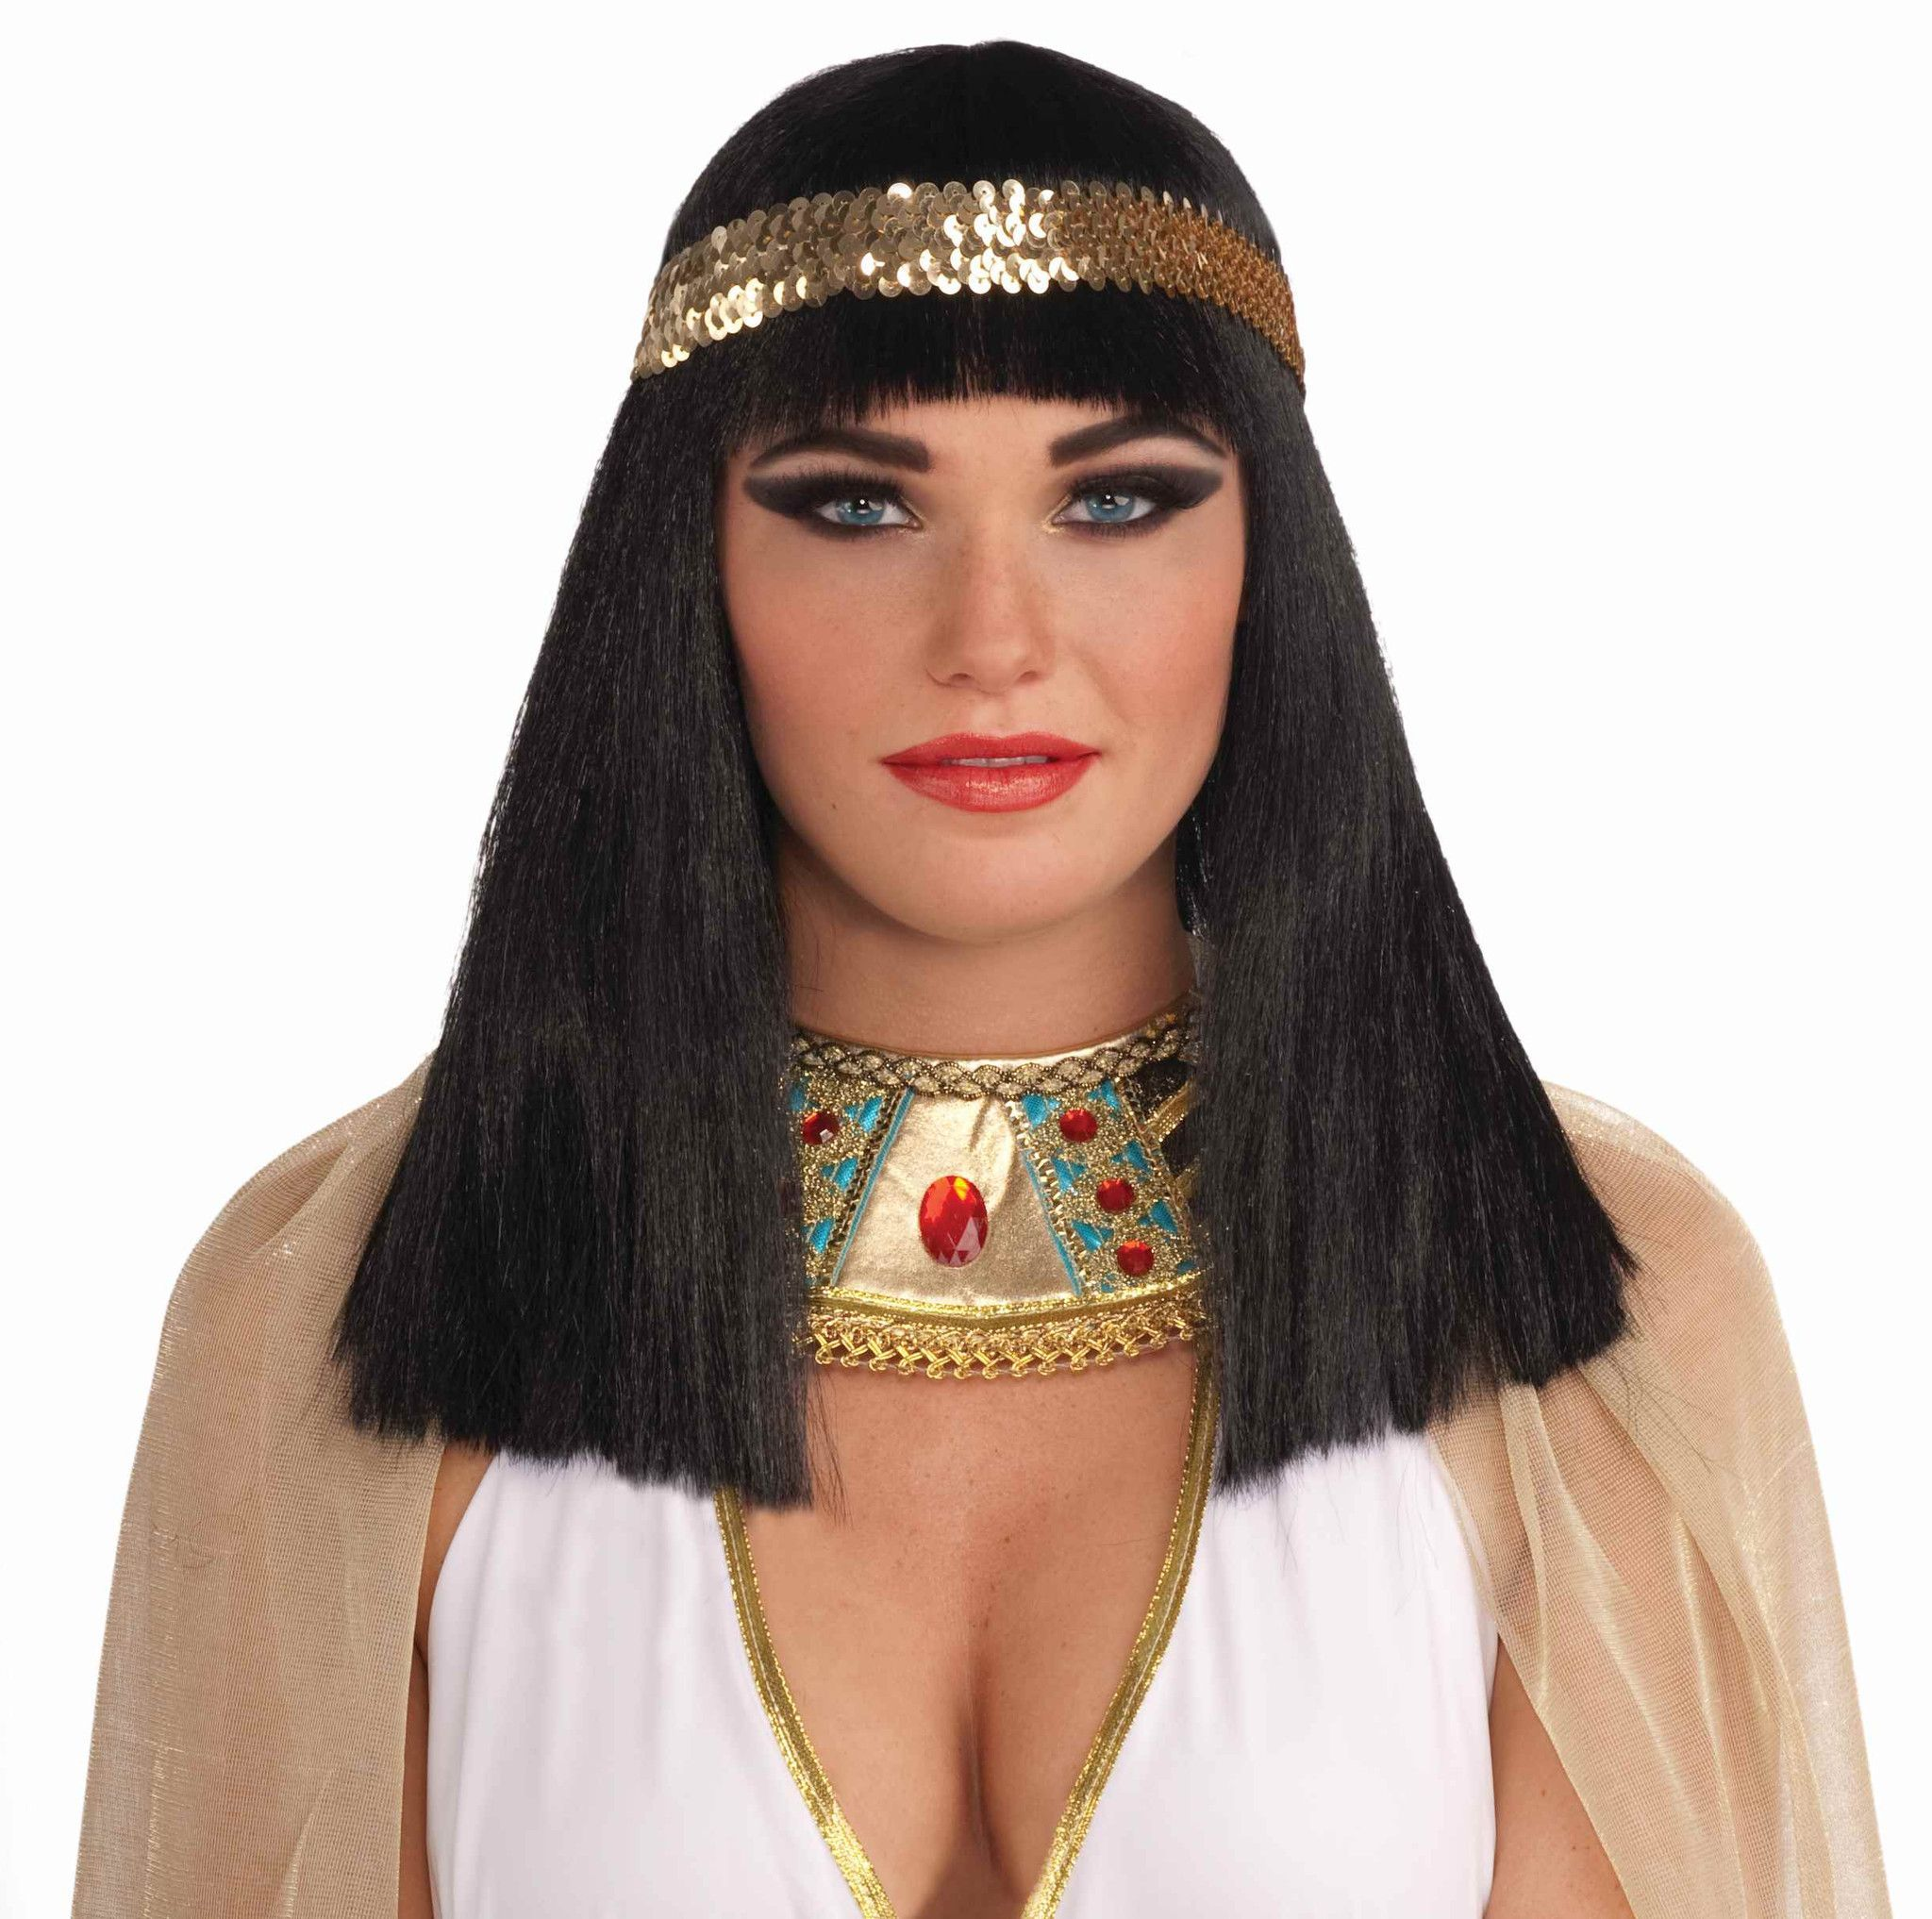 Black Cleopatra Adult Costume Wig With Headband in Halloween